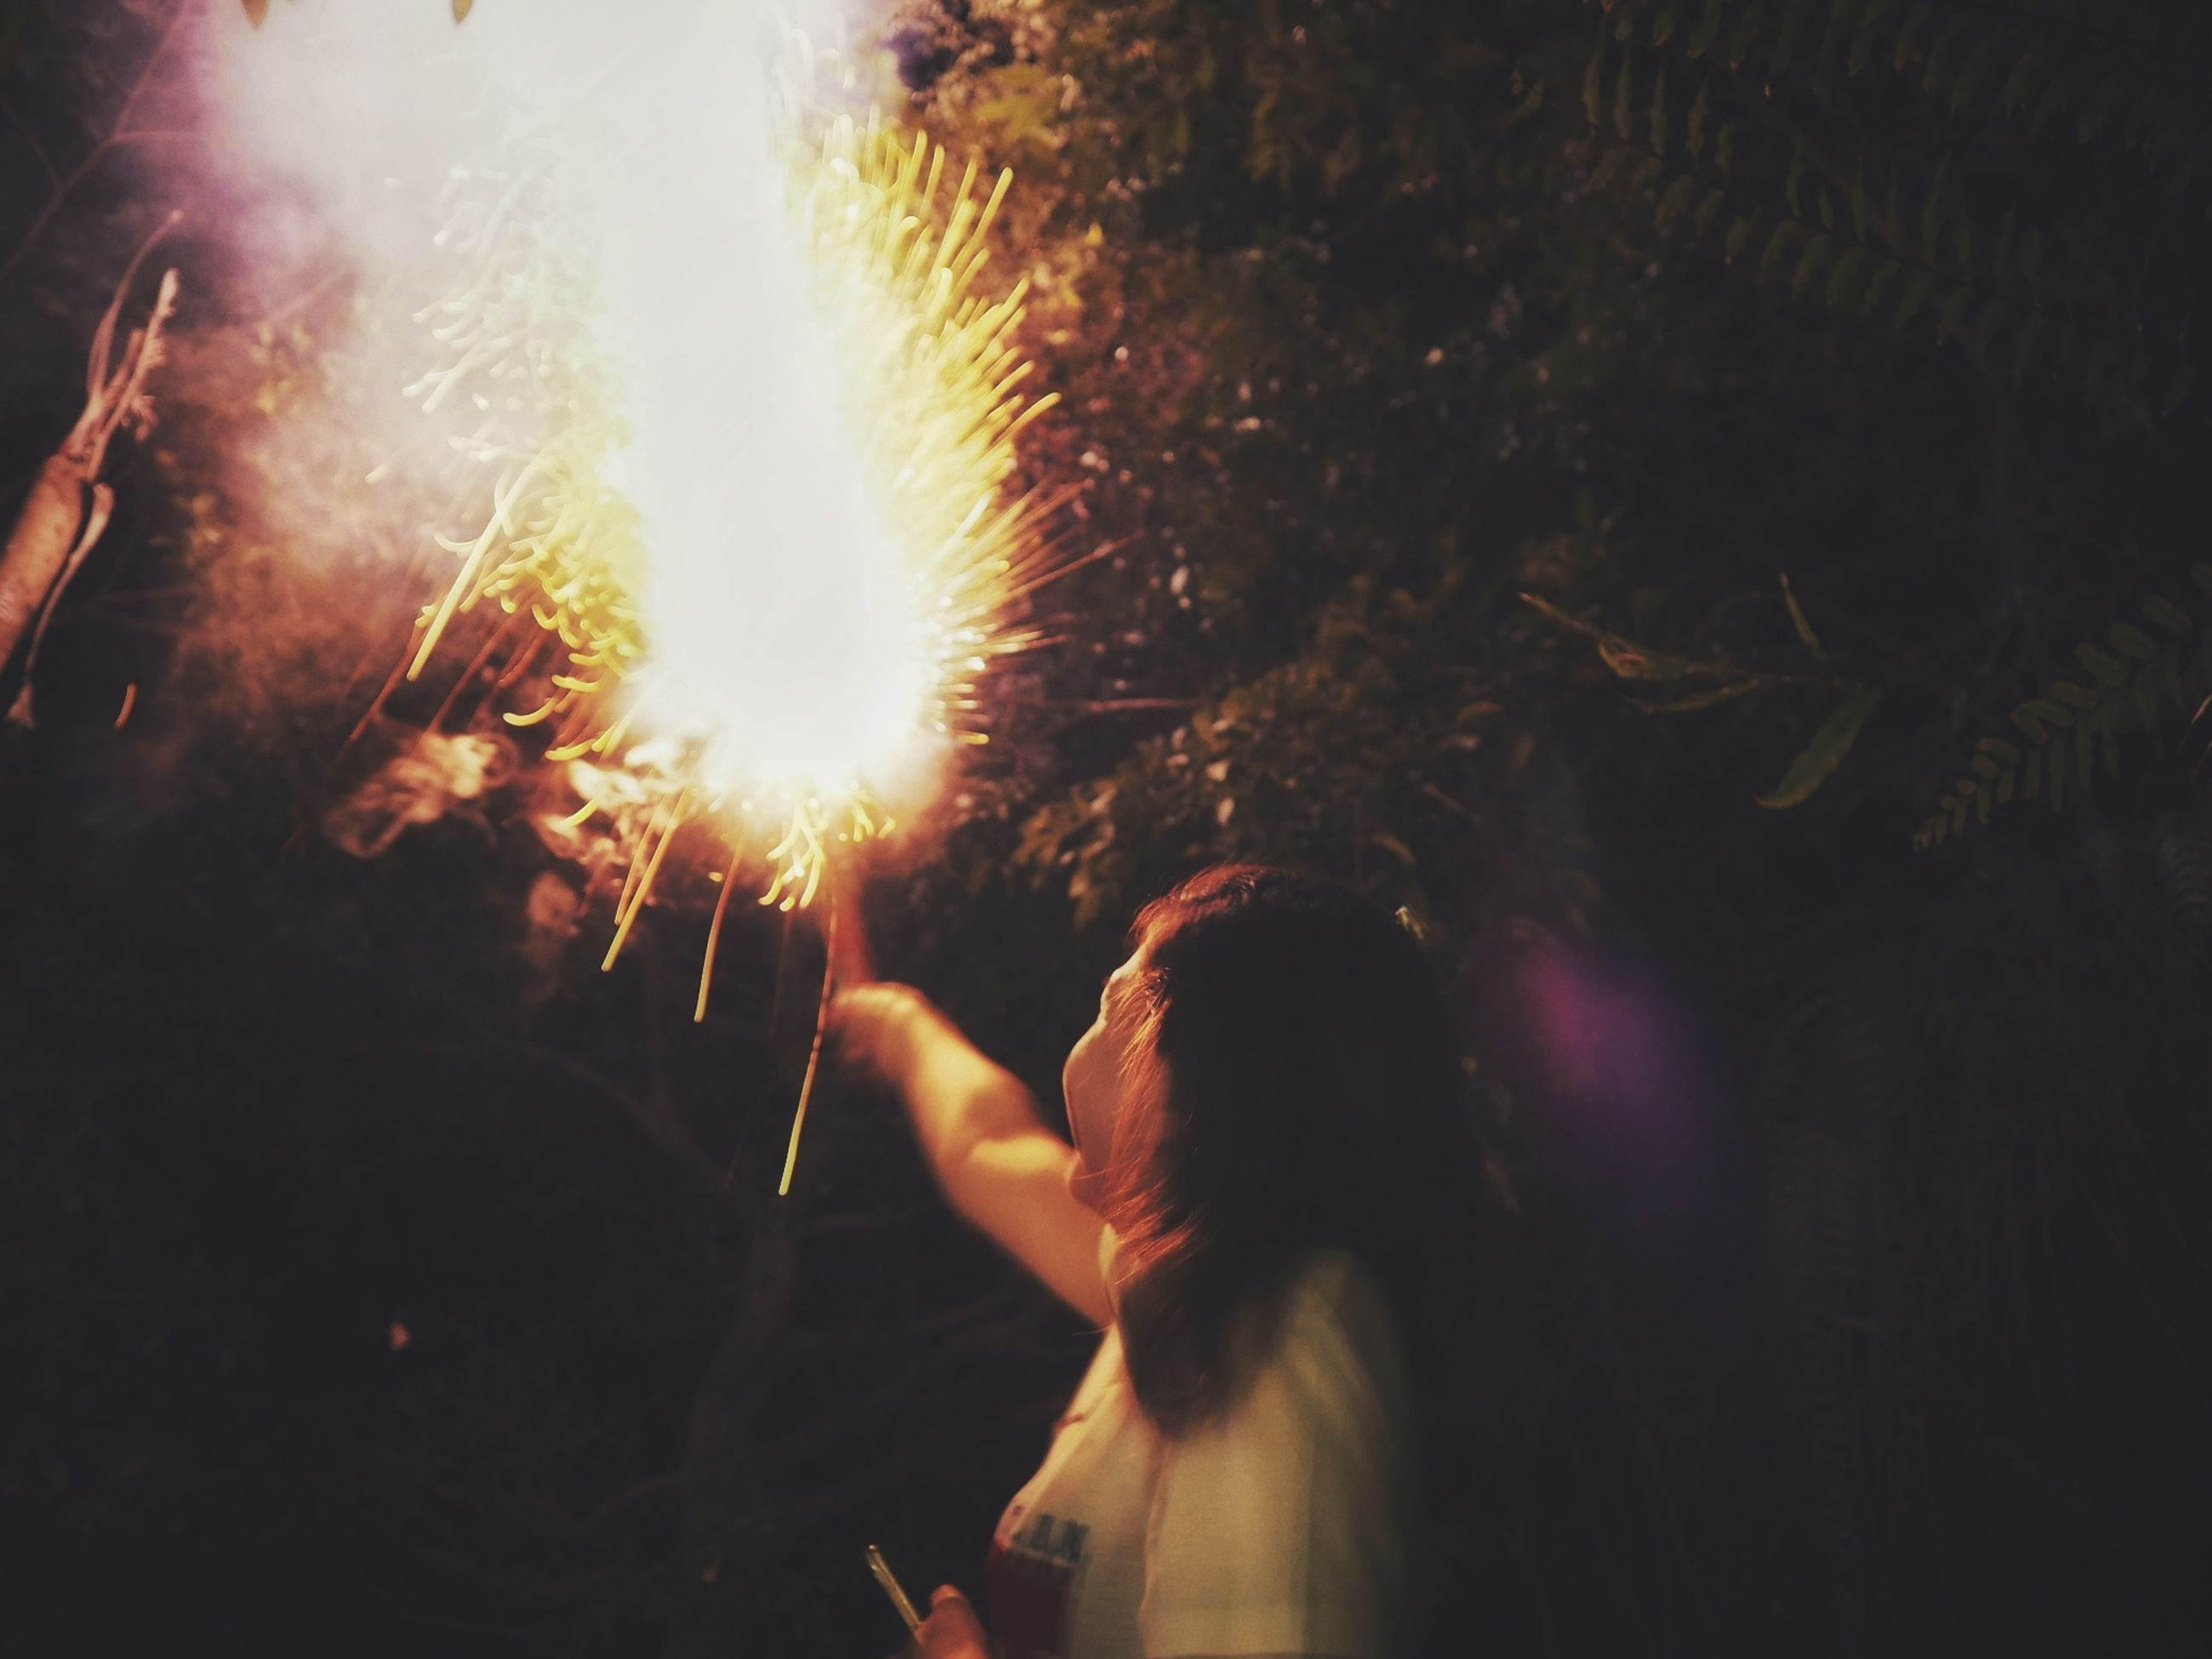 event, celebration, real people, motion, sparkler, glowing, blurred motion, illuminated, women, burning, firework, arts culture and entertainment, heat - temperature, firework - man made object, night, firework display, people, holding, leisure activity, long exposure, sparks, outdoors